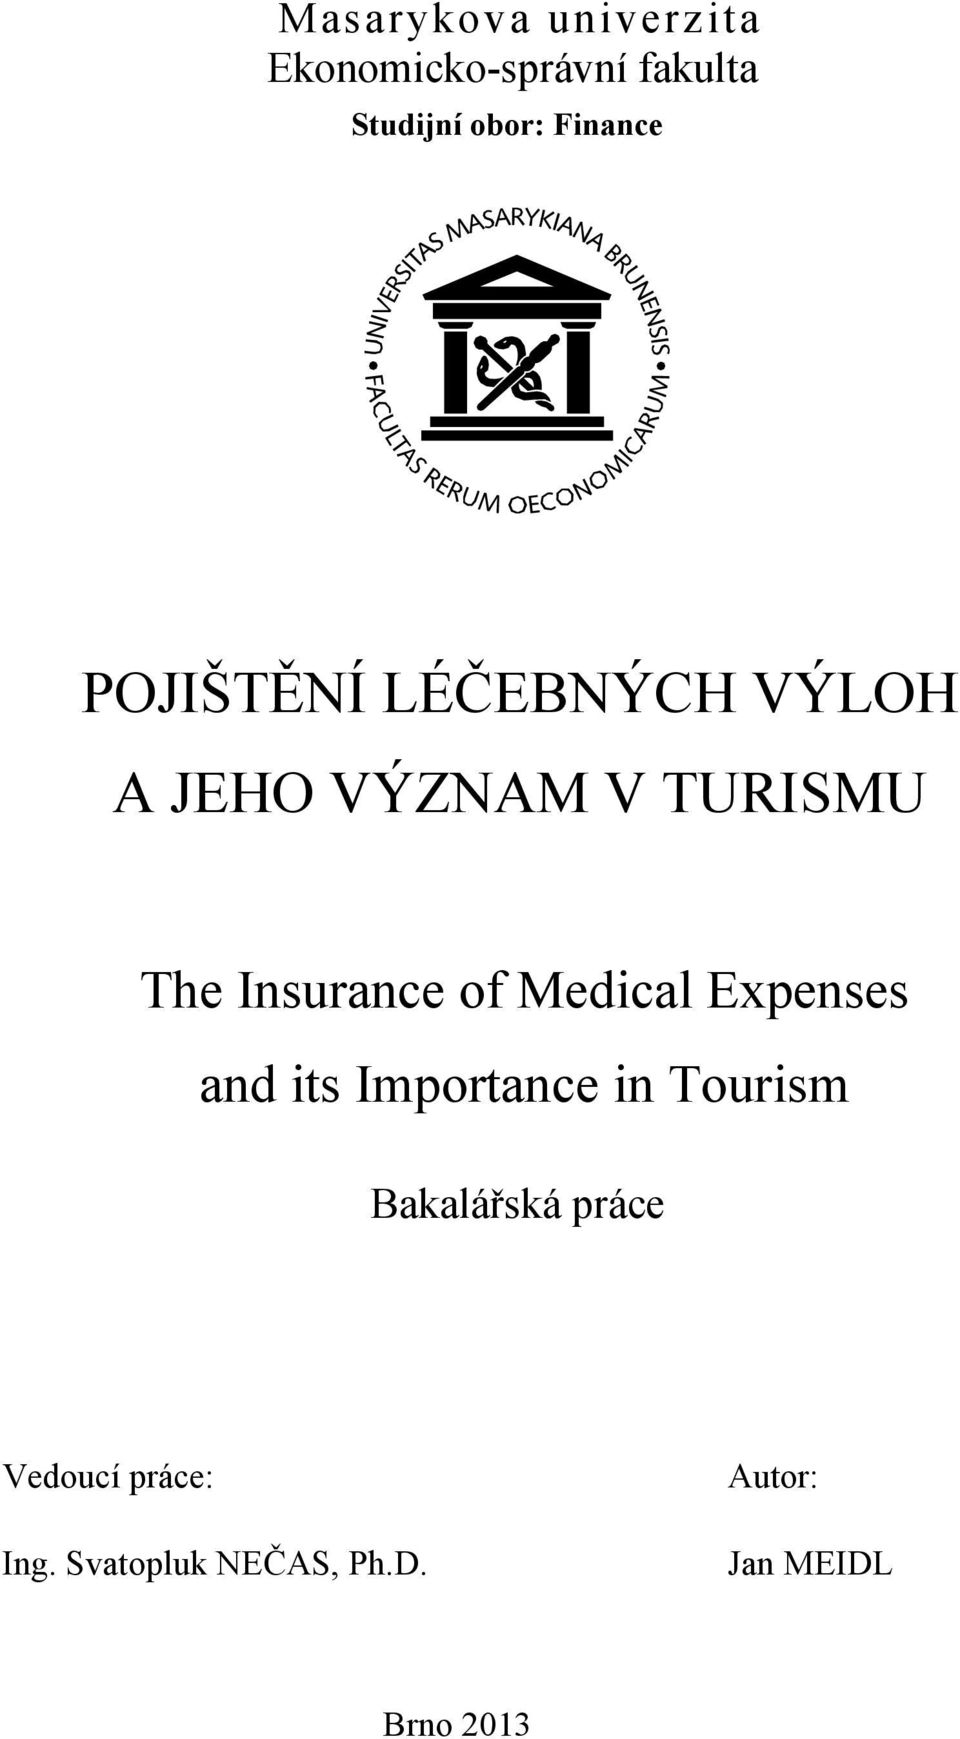 Insurance of Medical Expenses and its Importance in Tourism